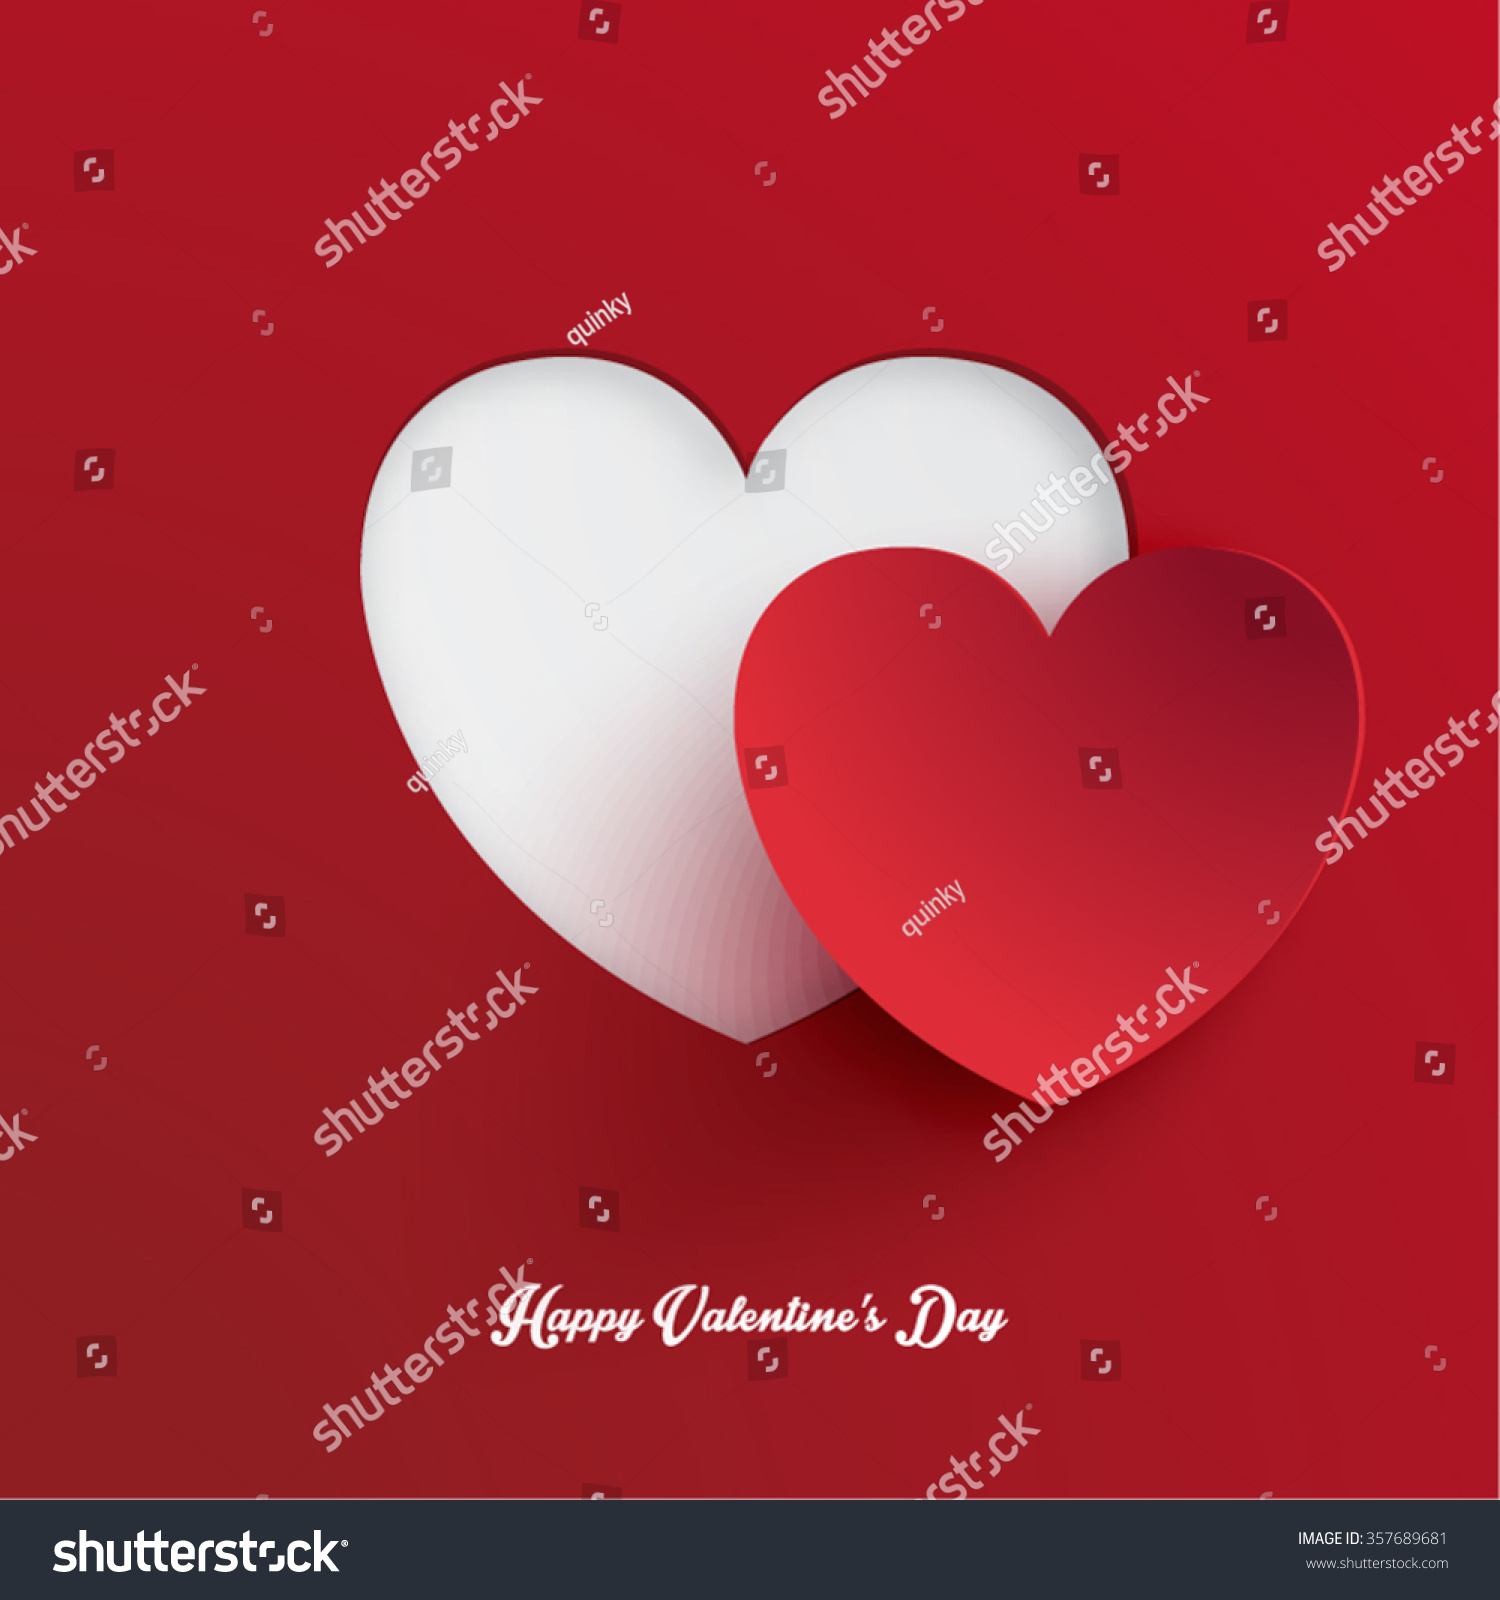 Heart Shape Valentine S Day Paper Cut Out Vector Design